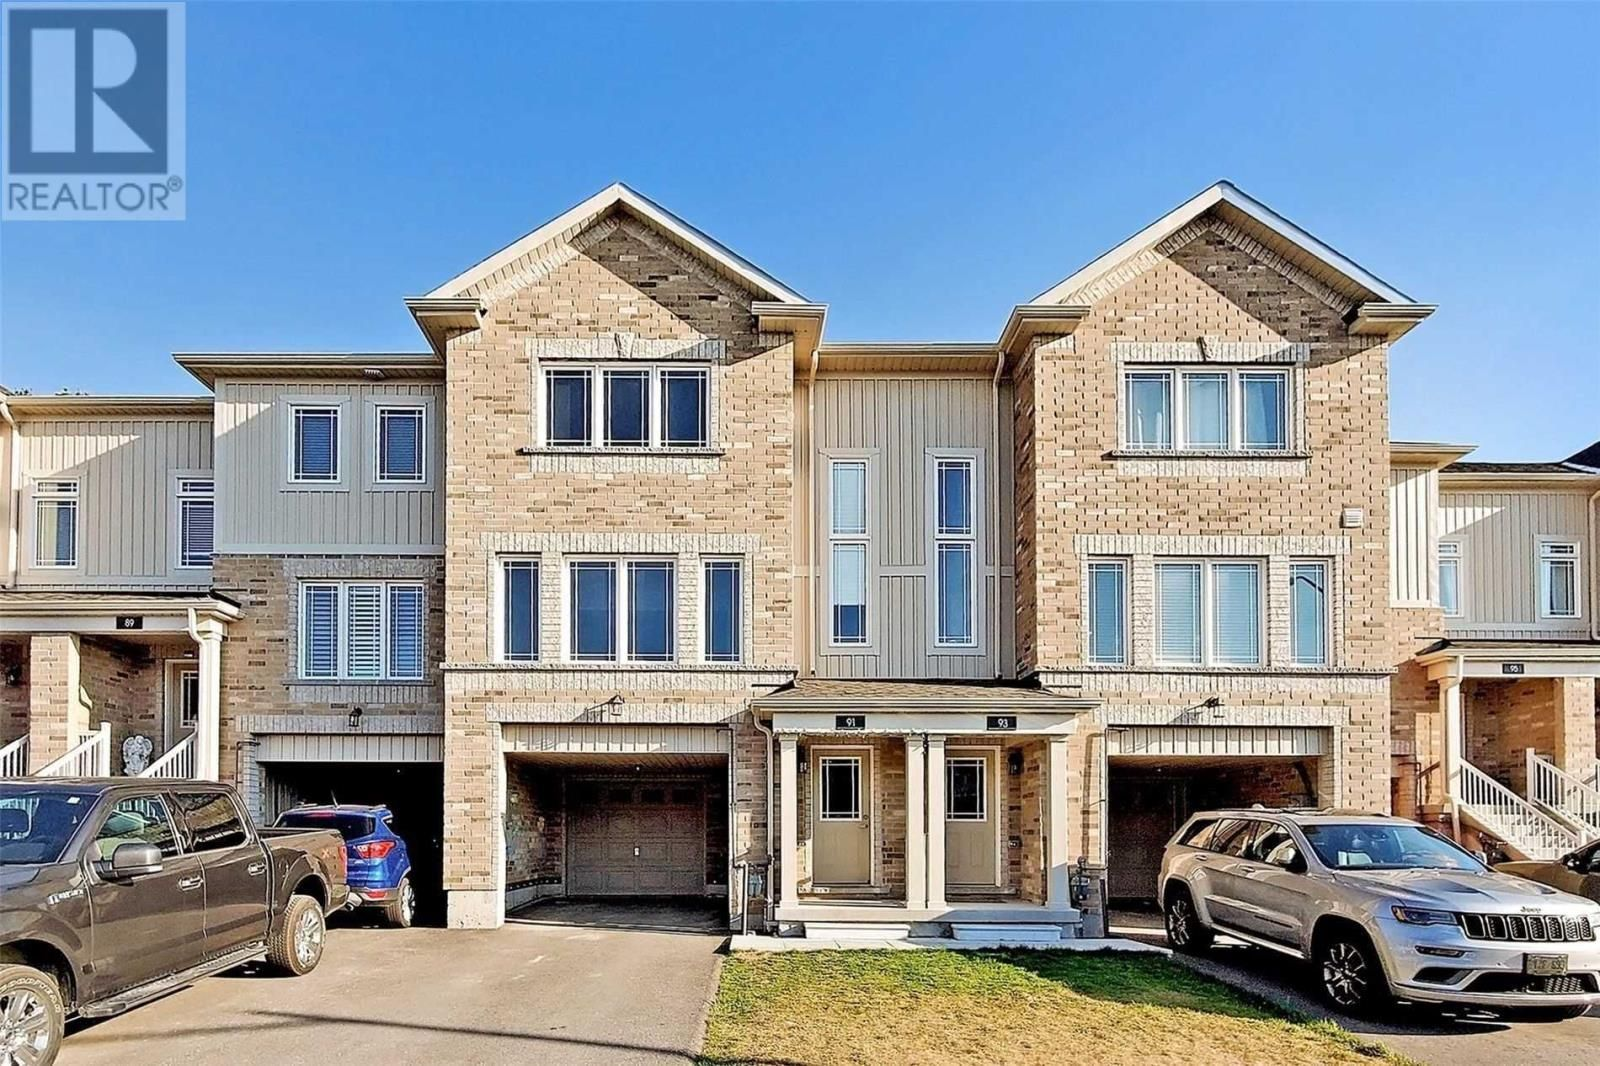 Main Photo: 91 FRANK'S WAY in Barrie: House for rent : MLS®# S5369583